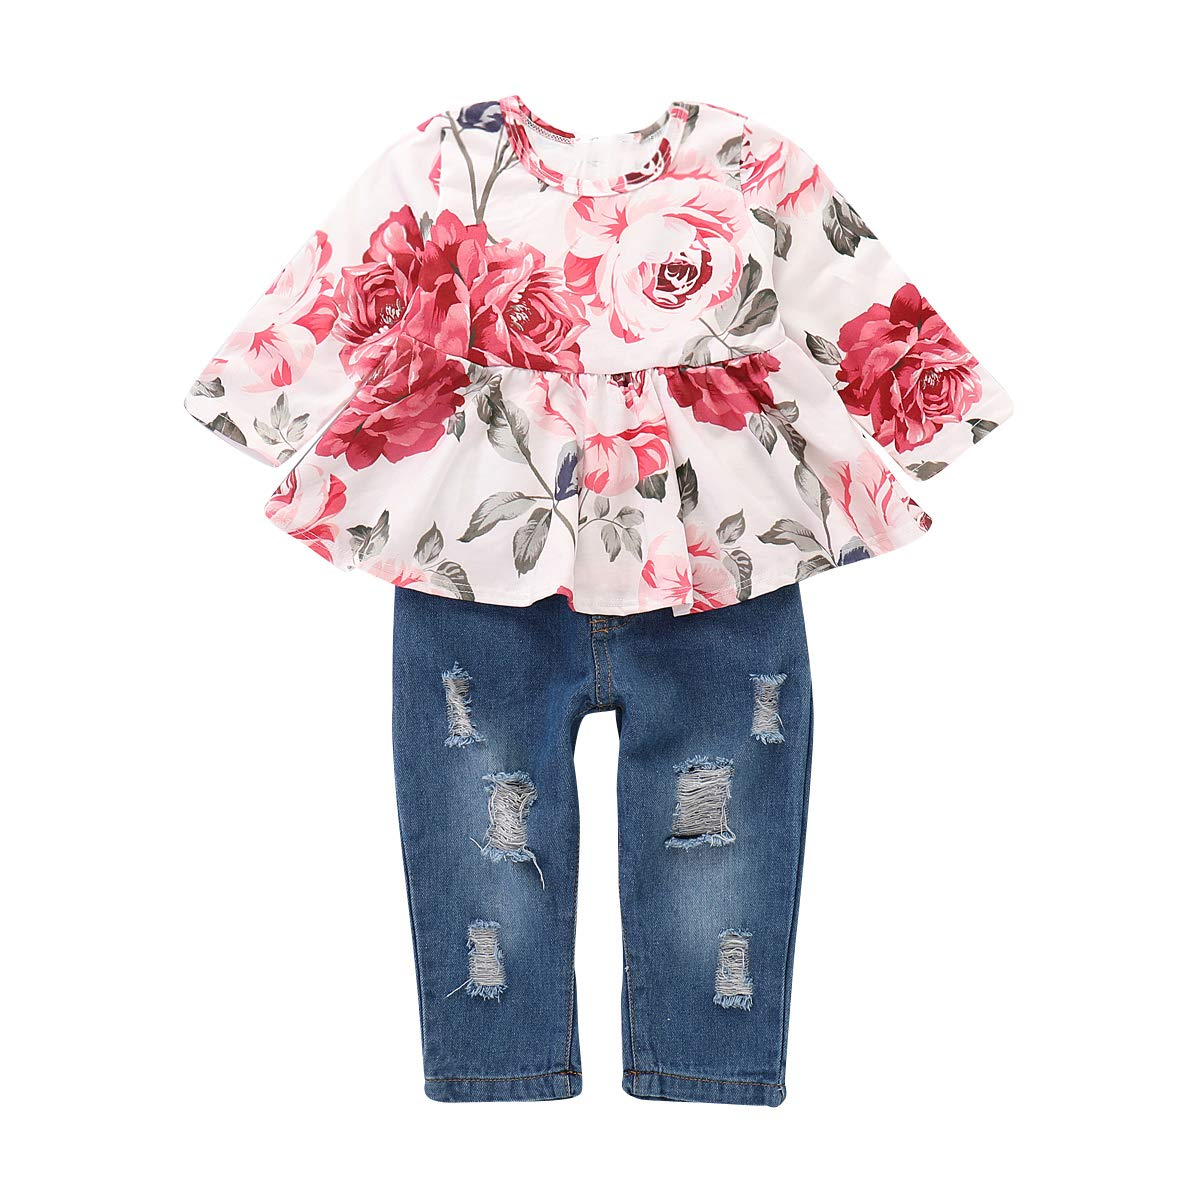 Ripped Jeans Clothes Set 2Pcs Toddler Girls Long Sleeve Floral Shirt Tops